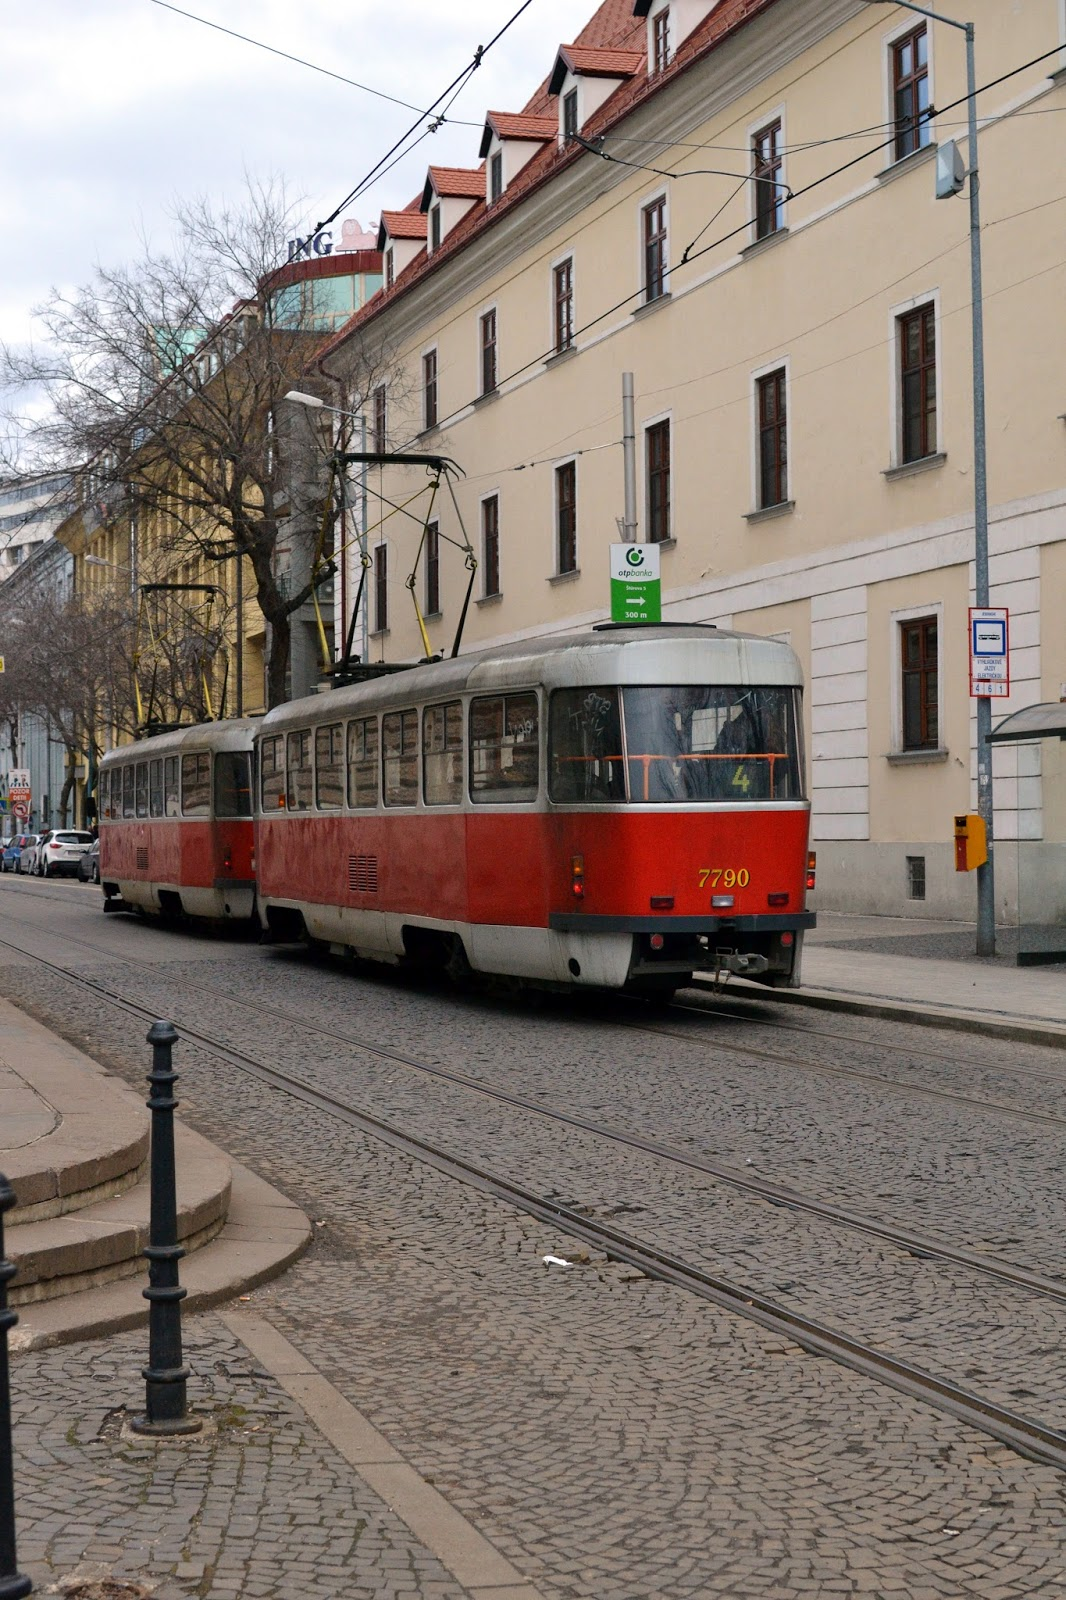 Slovakia, Bratislava, off the beaten track, eastern europe, eu, historical city, on the danube, ufo, bridge, communist. tram